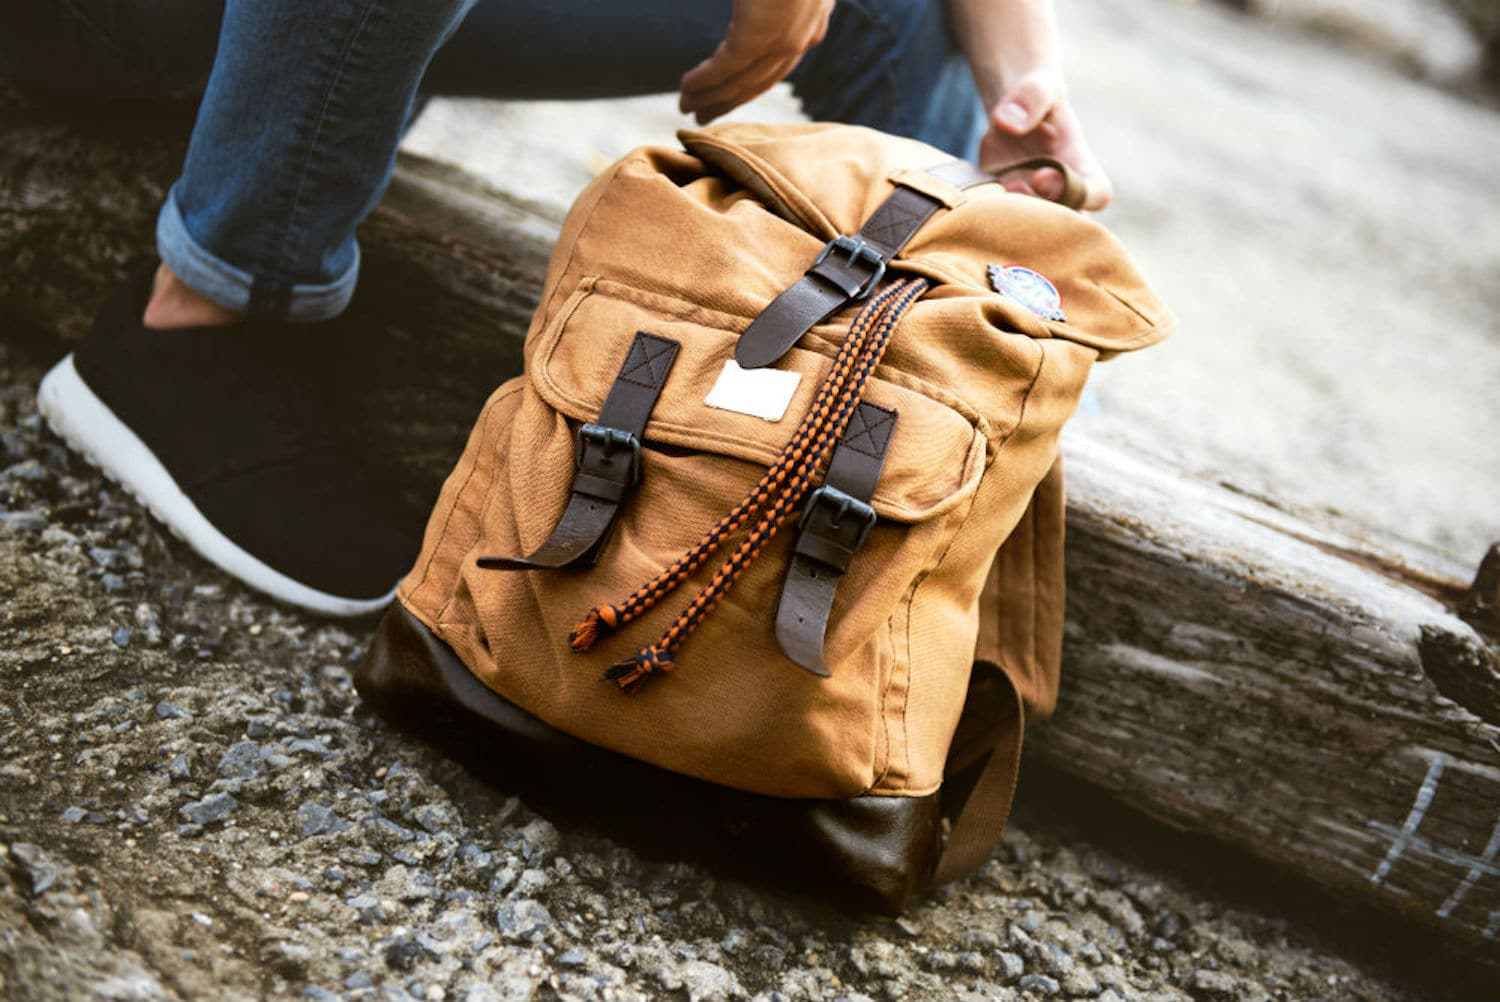 A person holding brown backpack